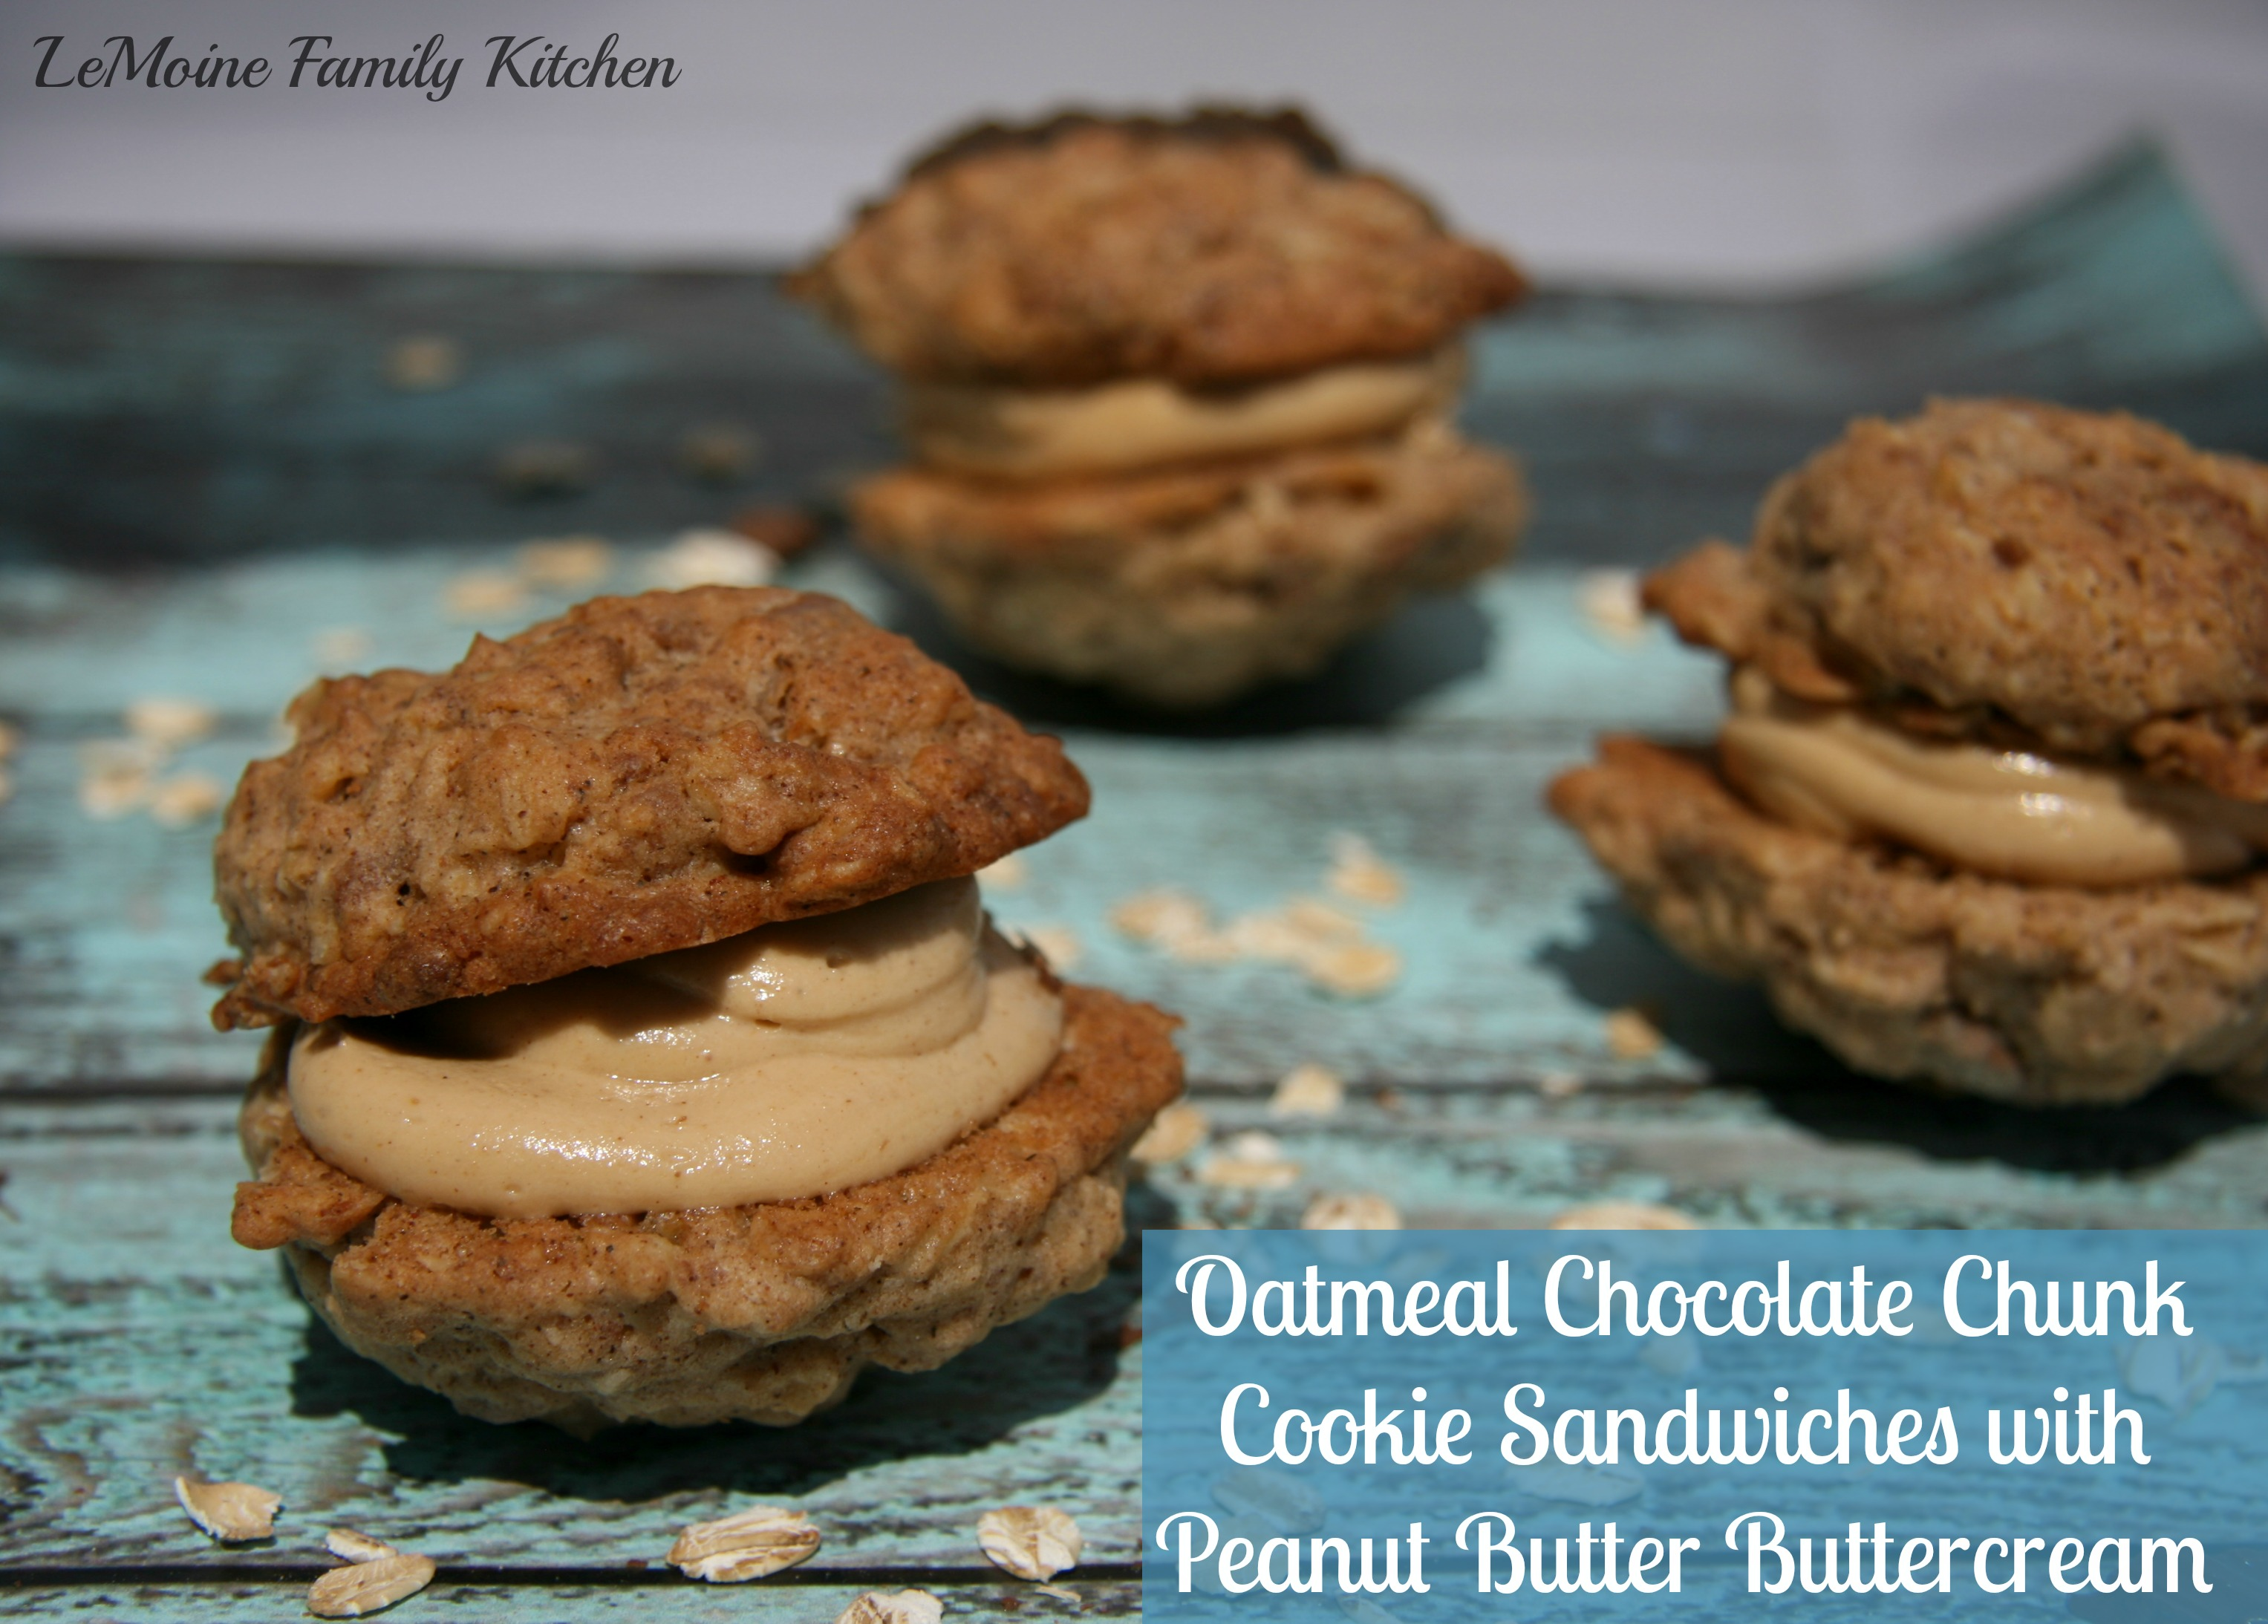 Oatmeal Chocolate Chunk Cookie Sandwiches with Peanut Butter Buttercream